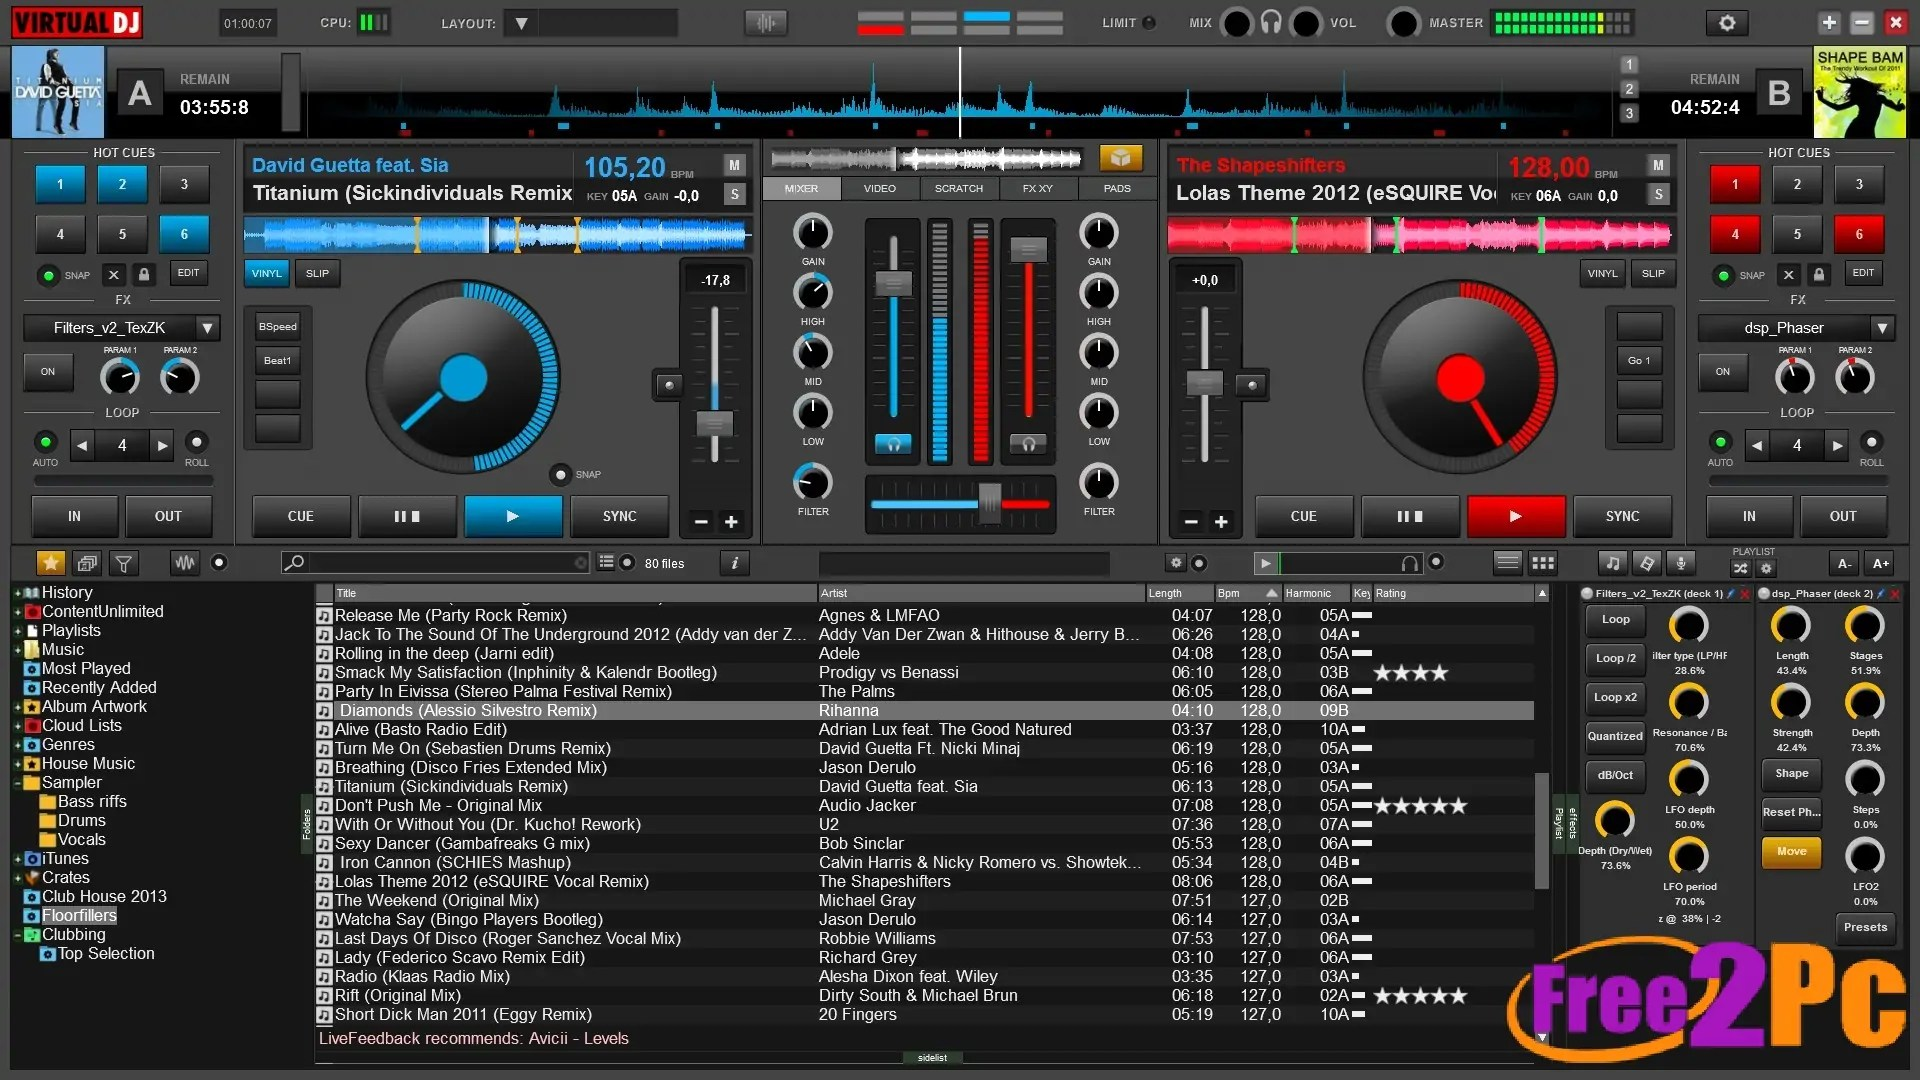 Mesa De Mezclas Dj Para Pc Virtualdj 8 Pro Crack Free Download Full Version 2016